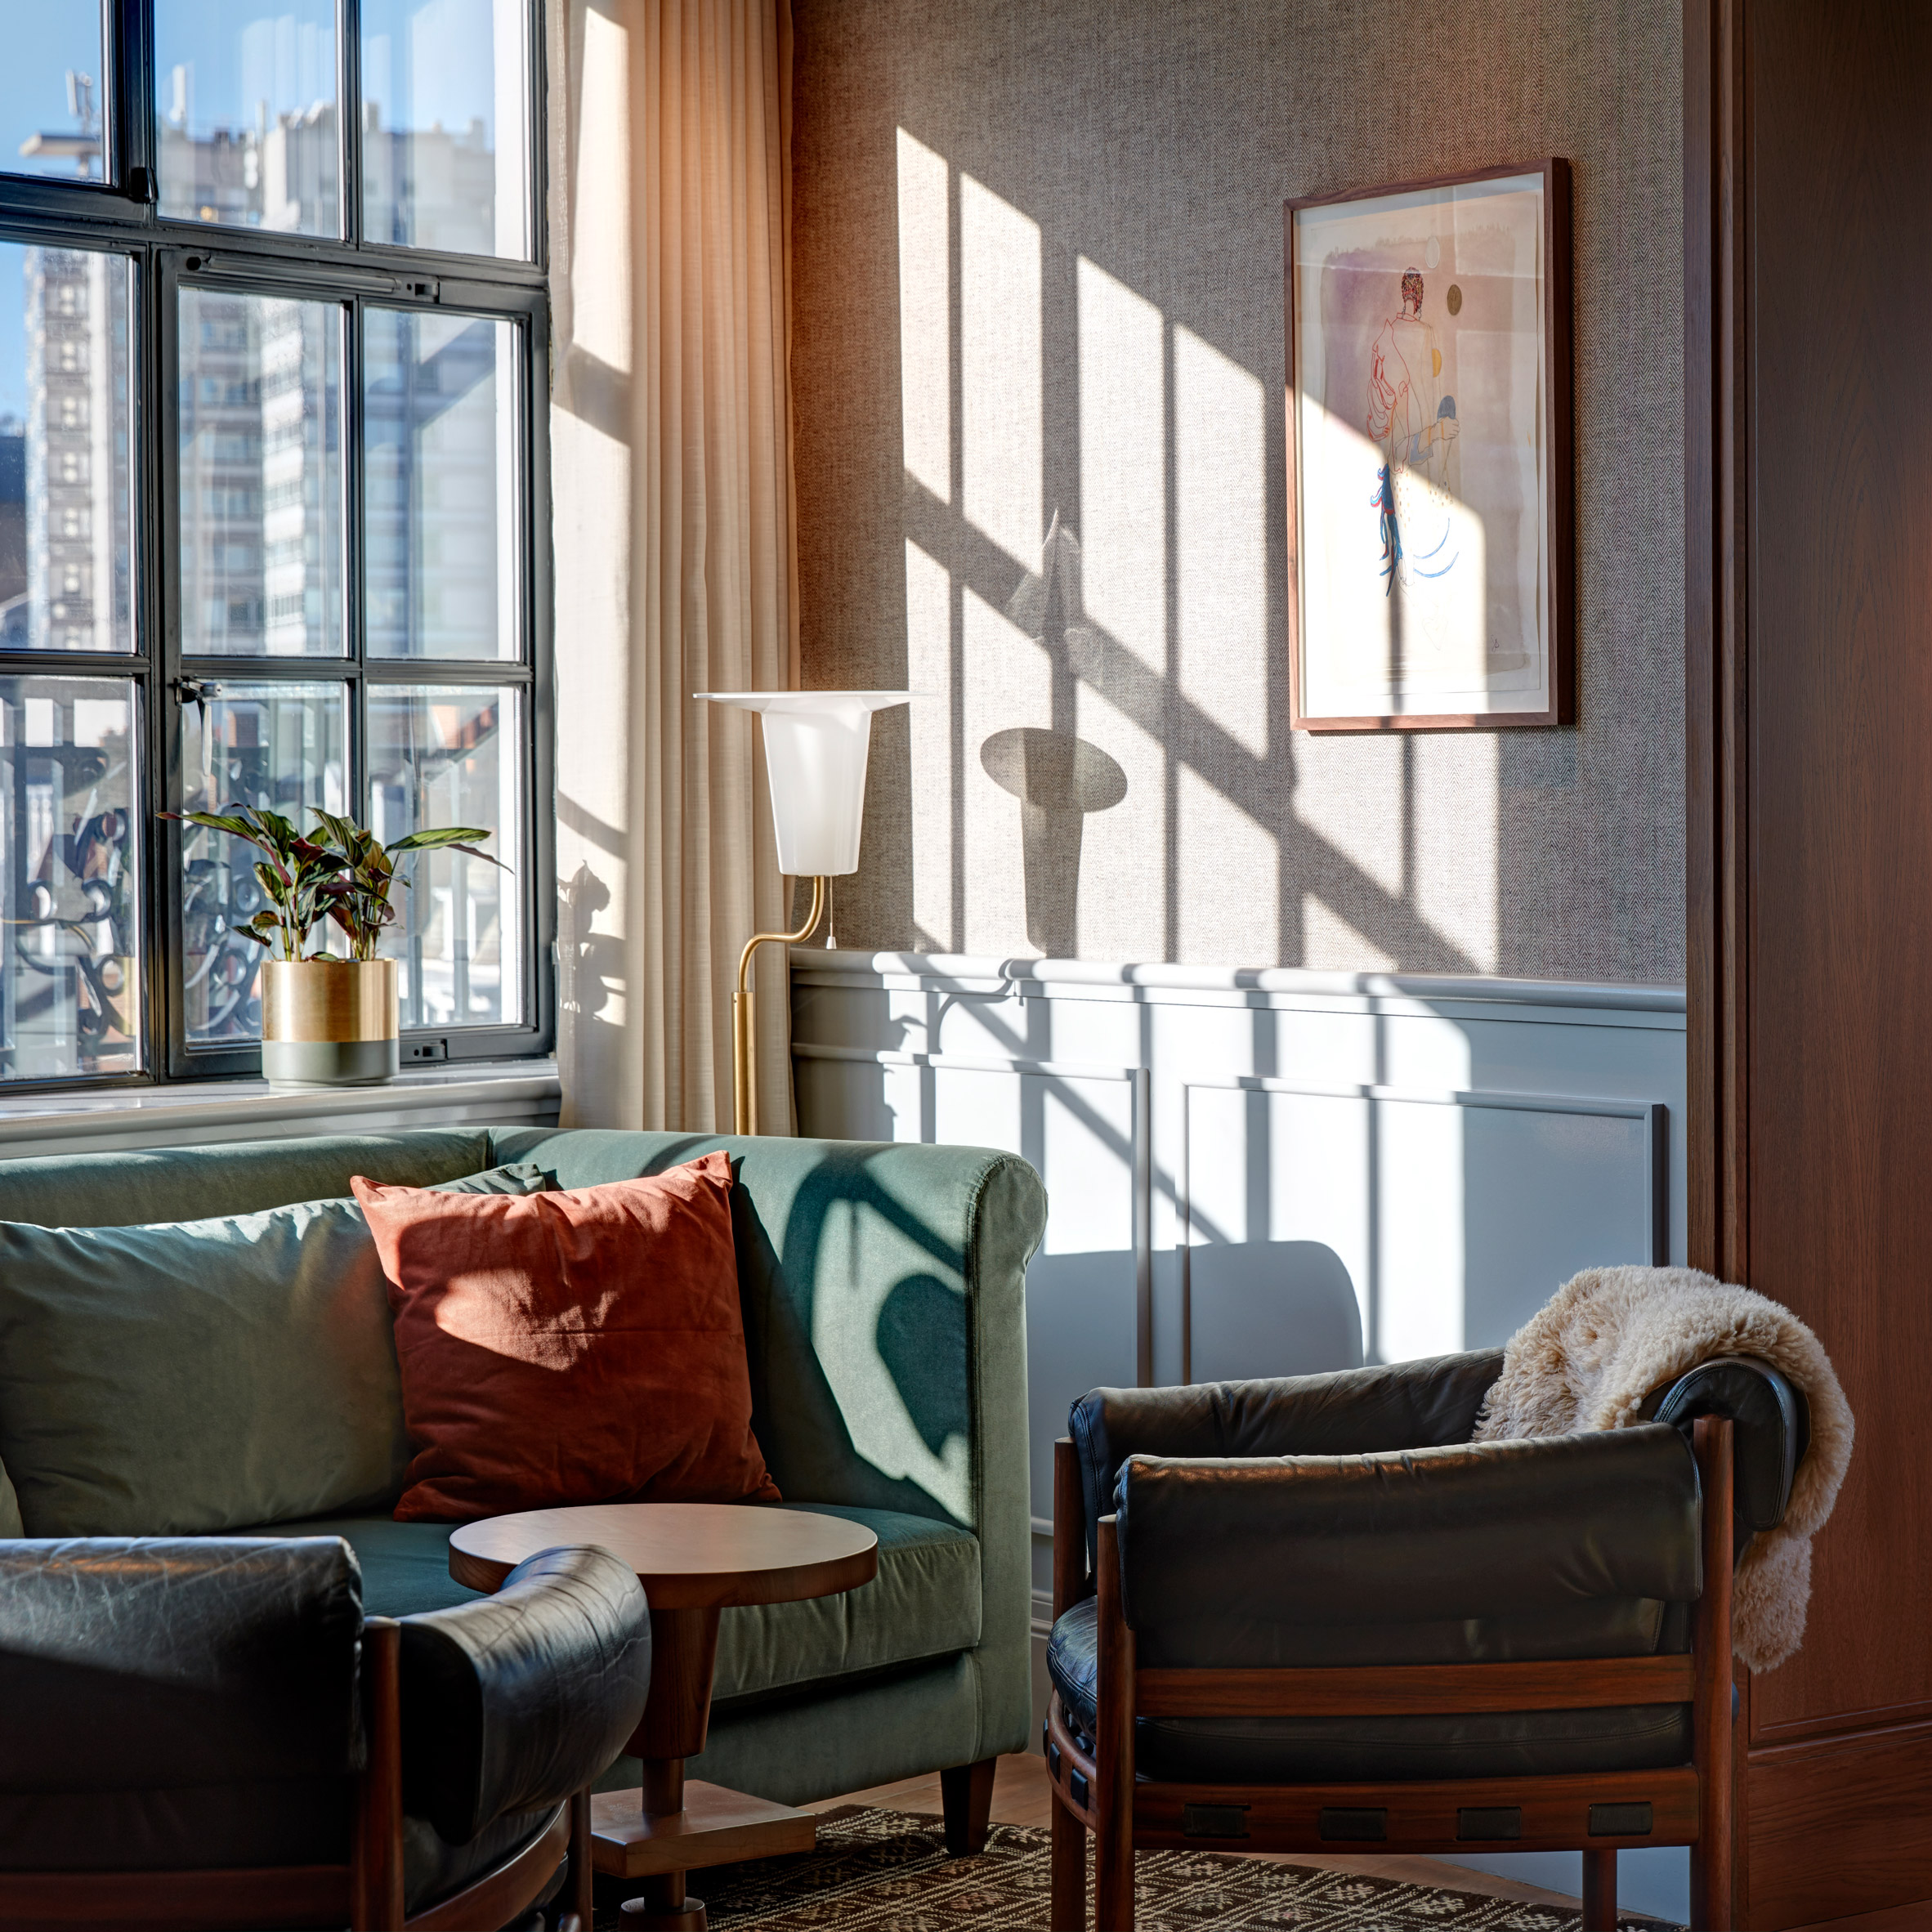 AvroKO creates art-deco-inspired interiors for new London members' club  Mortimer House